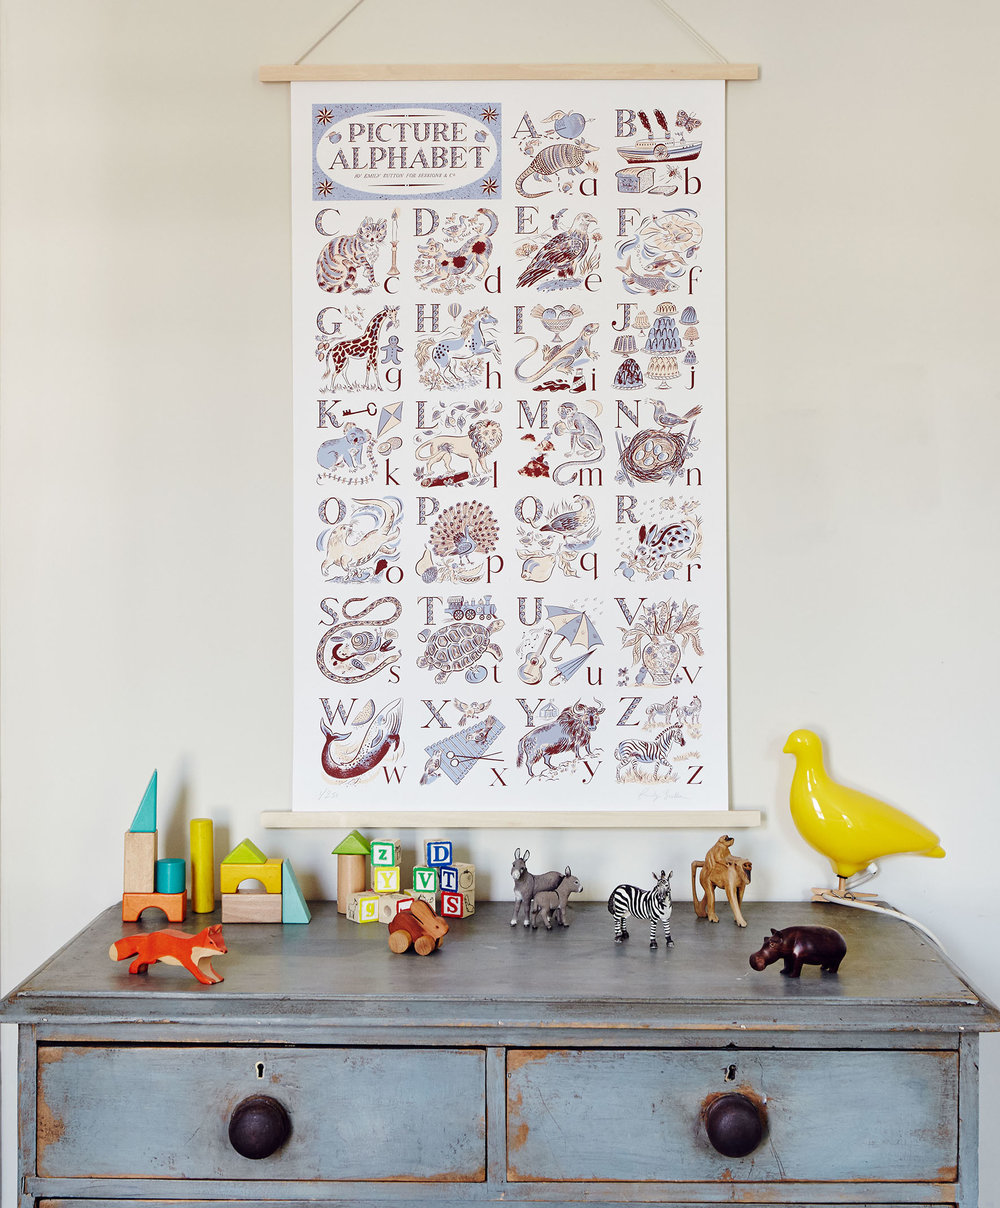 Picture Alphabet - This heirloom print is a lifetime investment, for a child to grow up surrounded by beauty. Full of charming details, it looks as perfect in a nursery as it does in the kitchen.£250Sessions & Co.